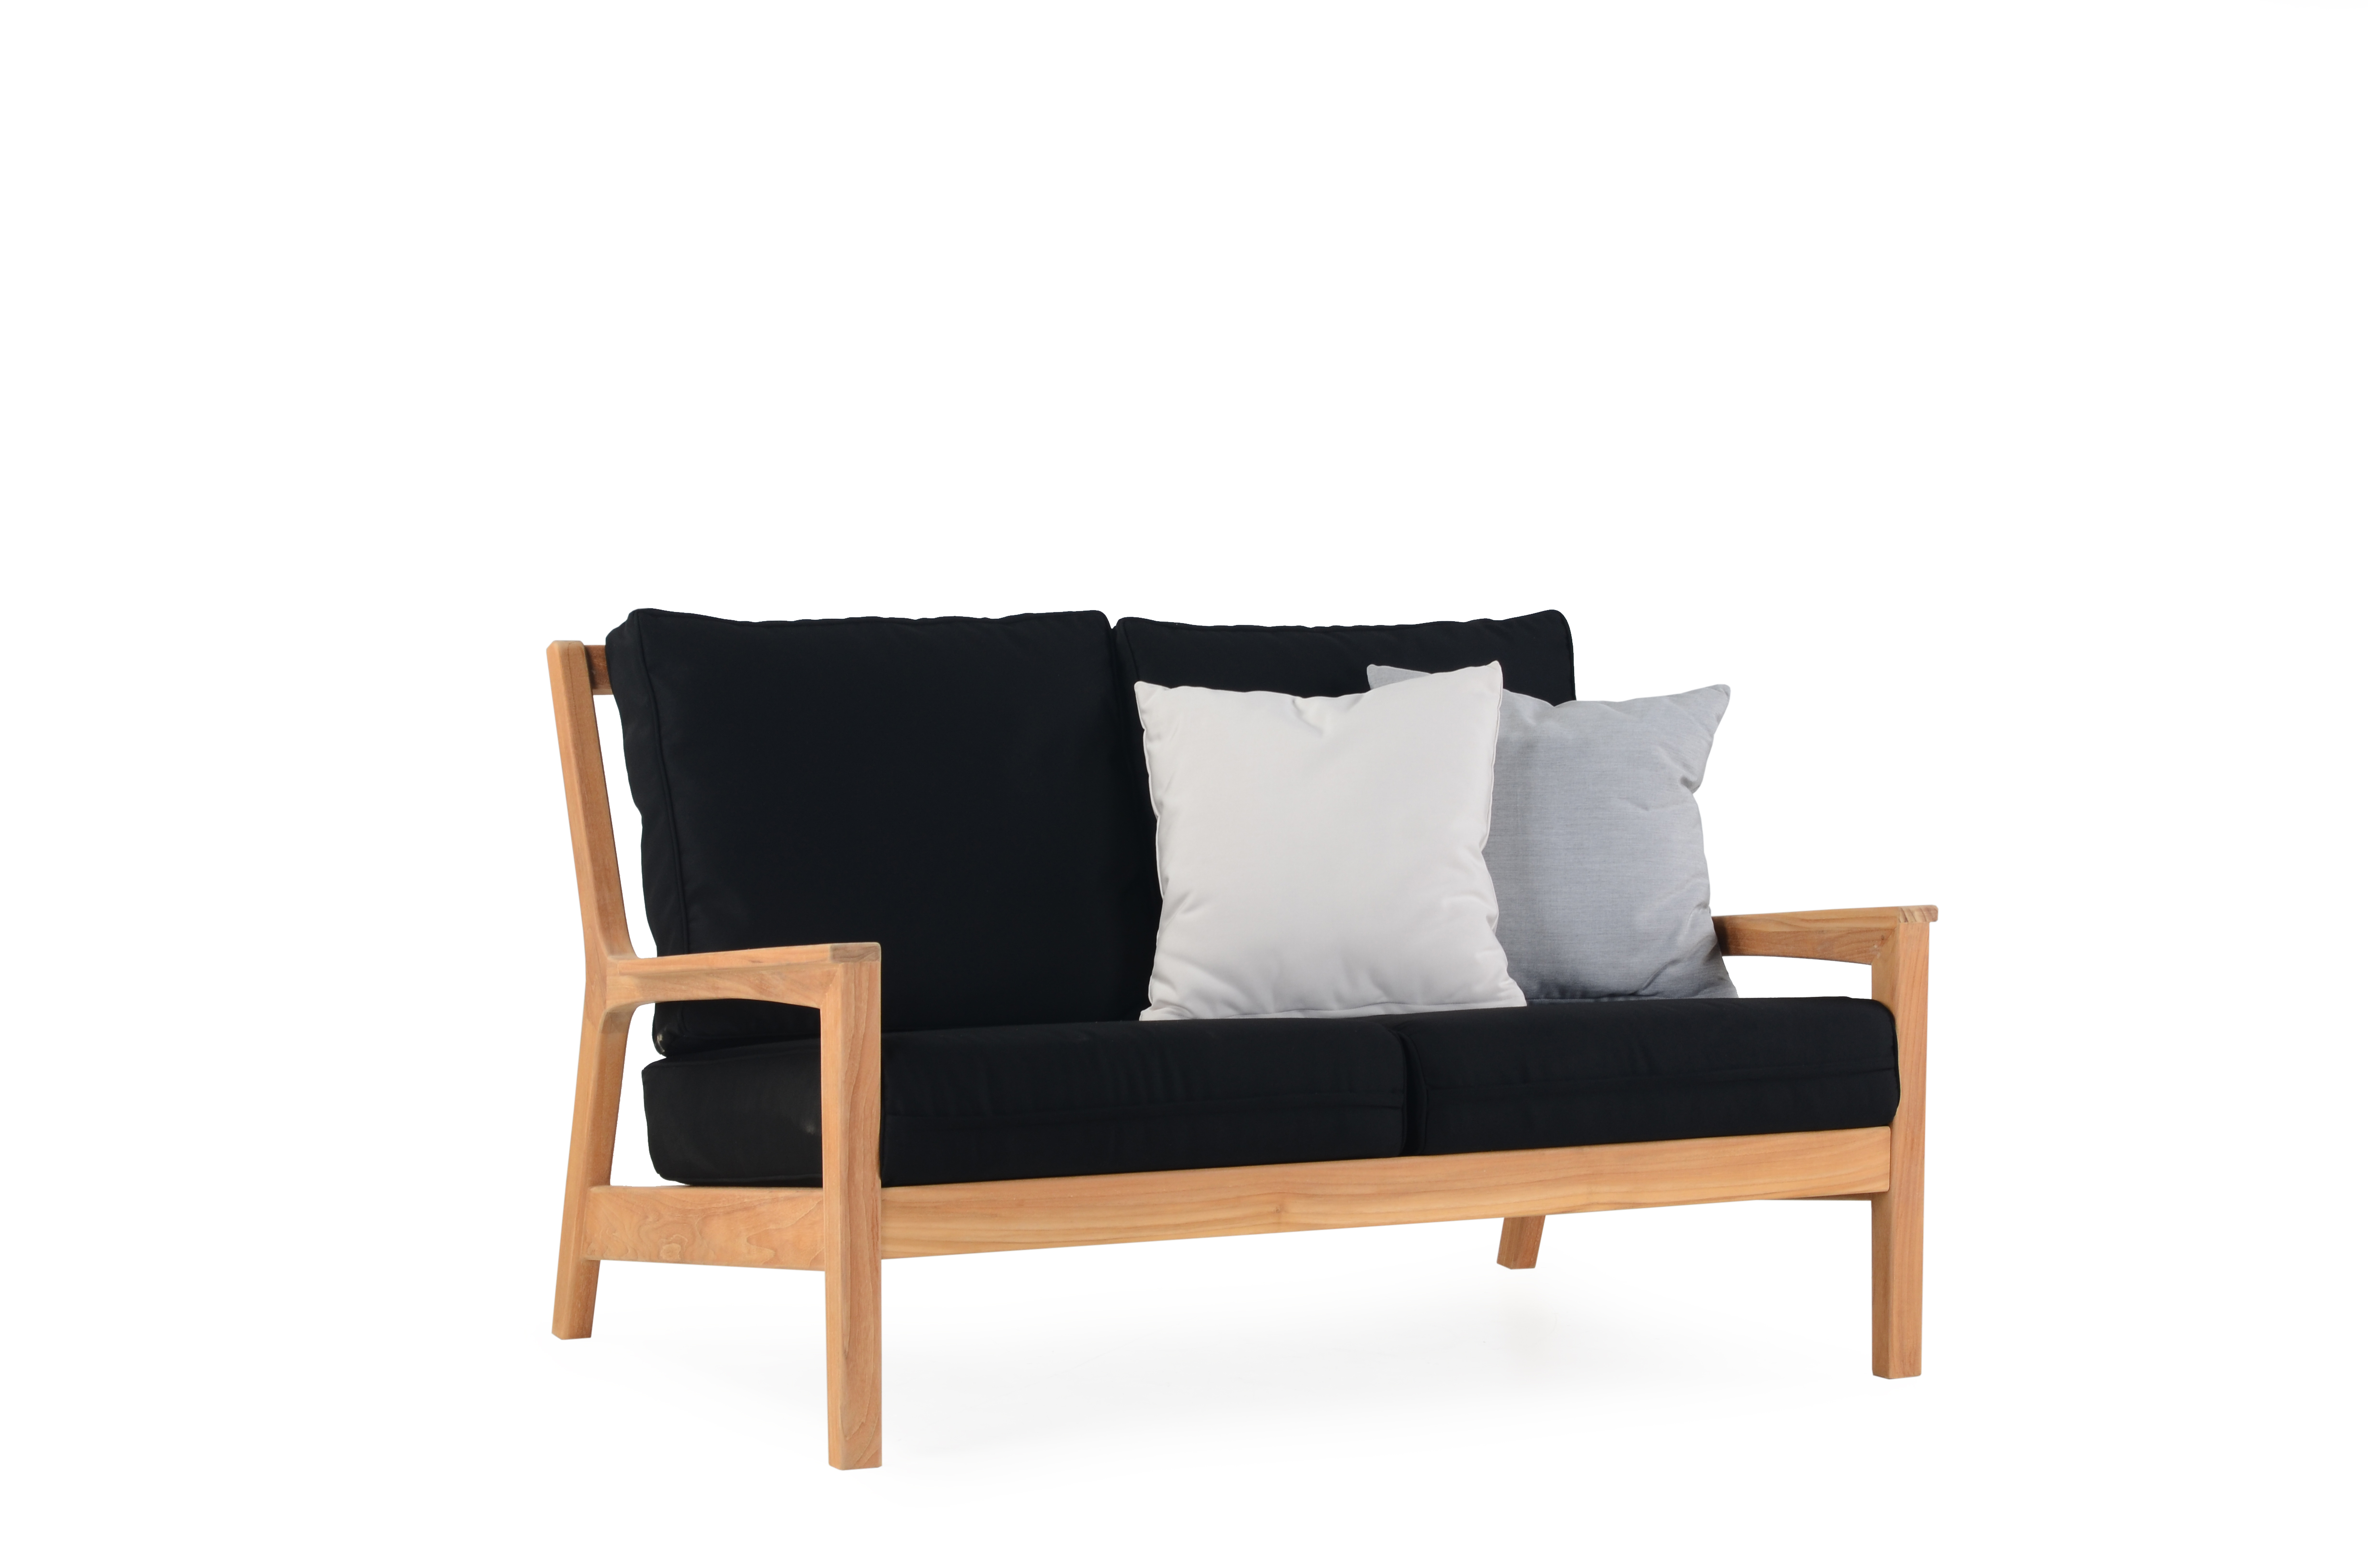 Eva 2 seater sofa stellar couture outdoor for 2 seater chaise sofa for sale